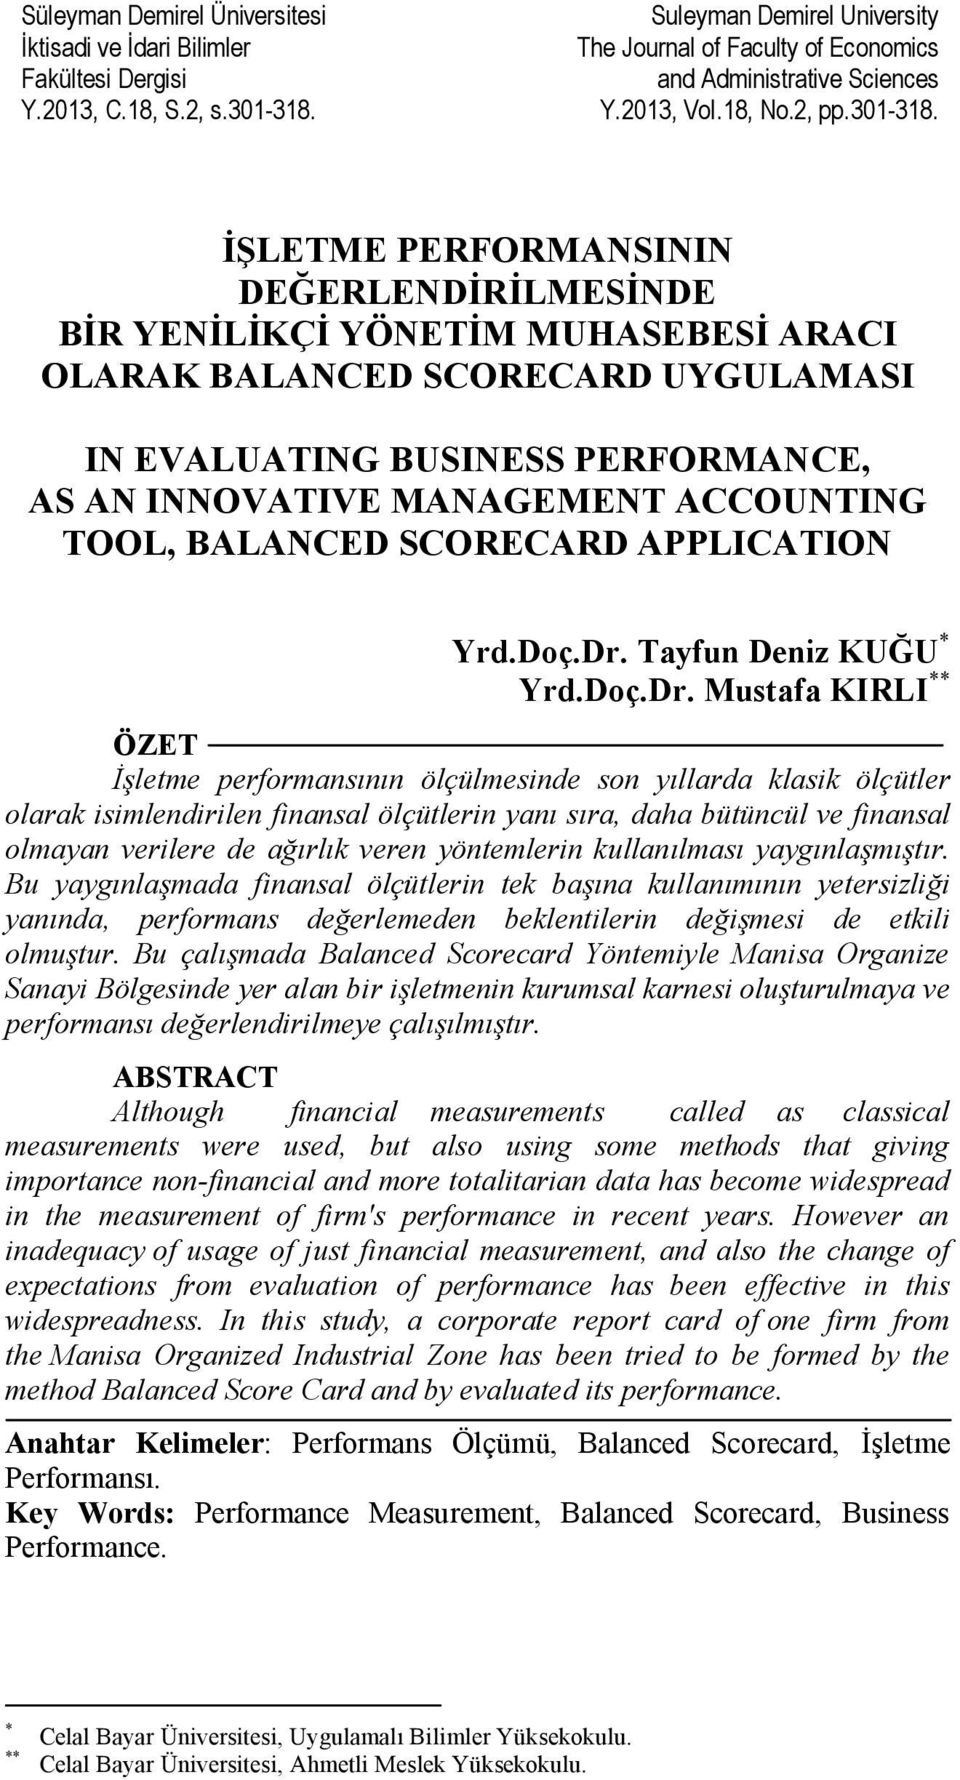 İŞLETME PERFORMANSININ DEĞERLENDİRİLMESİNDE BİR YENİLİKÇİ YÖNETİM MUHASEBESİ ARACI OLARAK BALANCED SCORECARD UYGULAMASI IN EVALUATING BUSINESS PERFORMANCE, AS AN INNOVATIVE MANAGEMENT ACCOUNTING